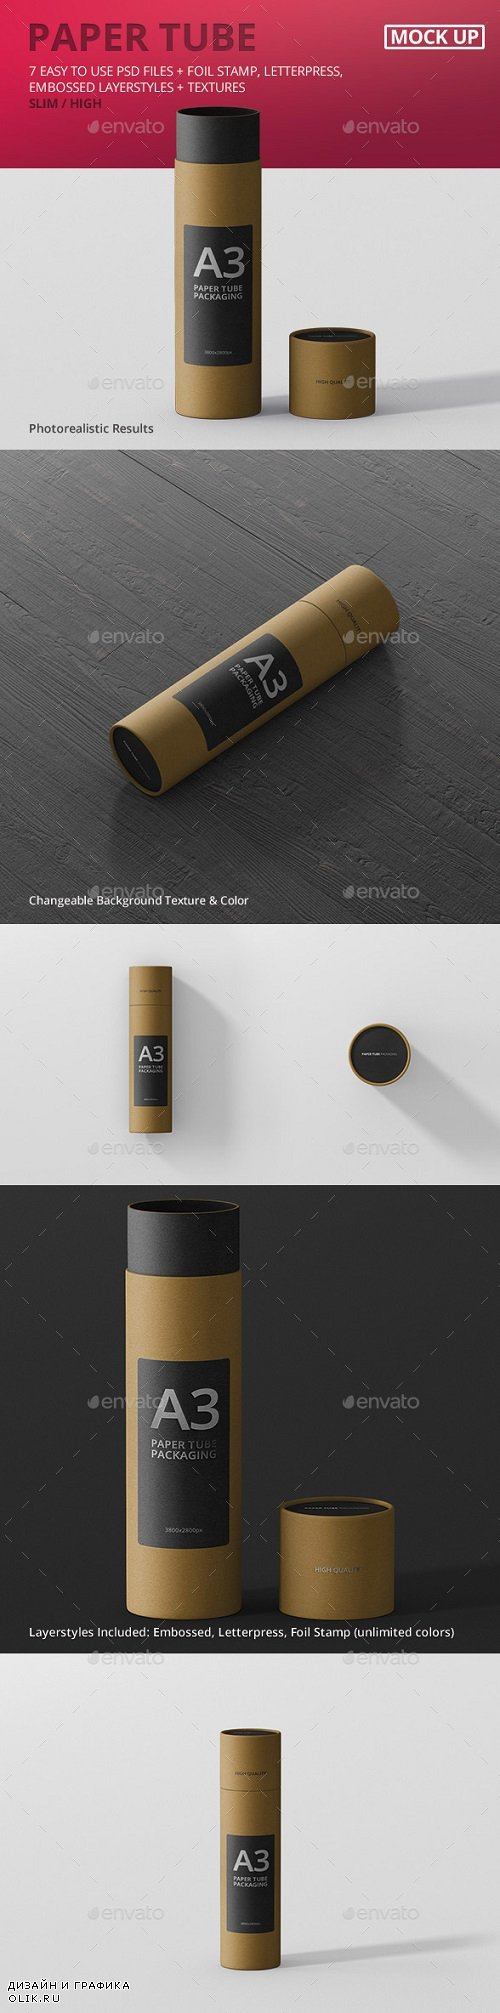 Paper Tube Packaging Mockup - Slim High 19349251